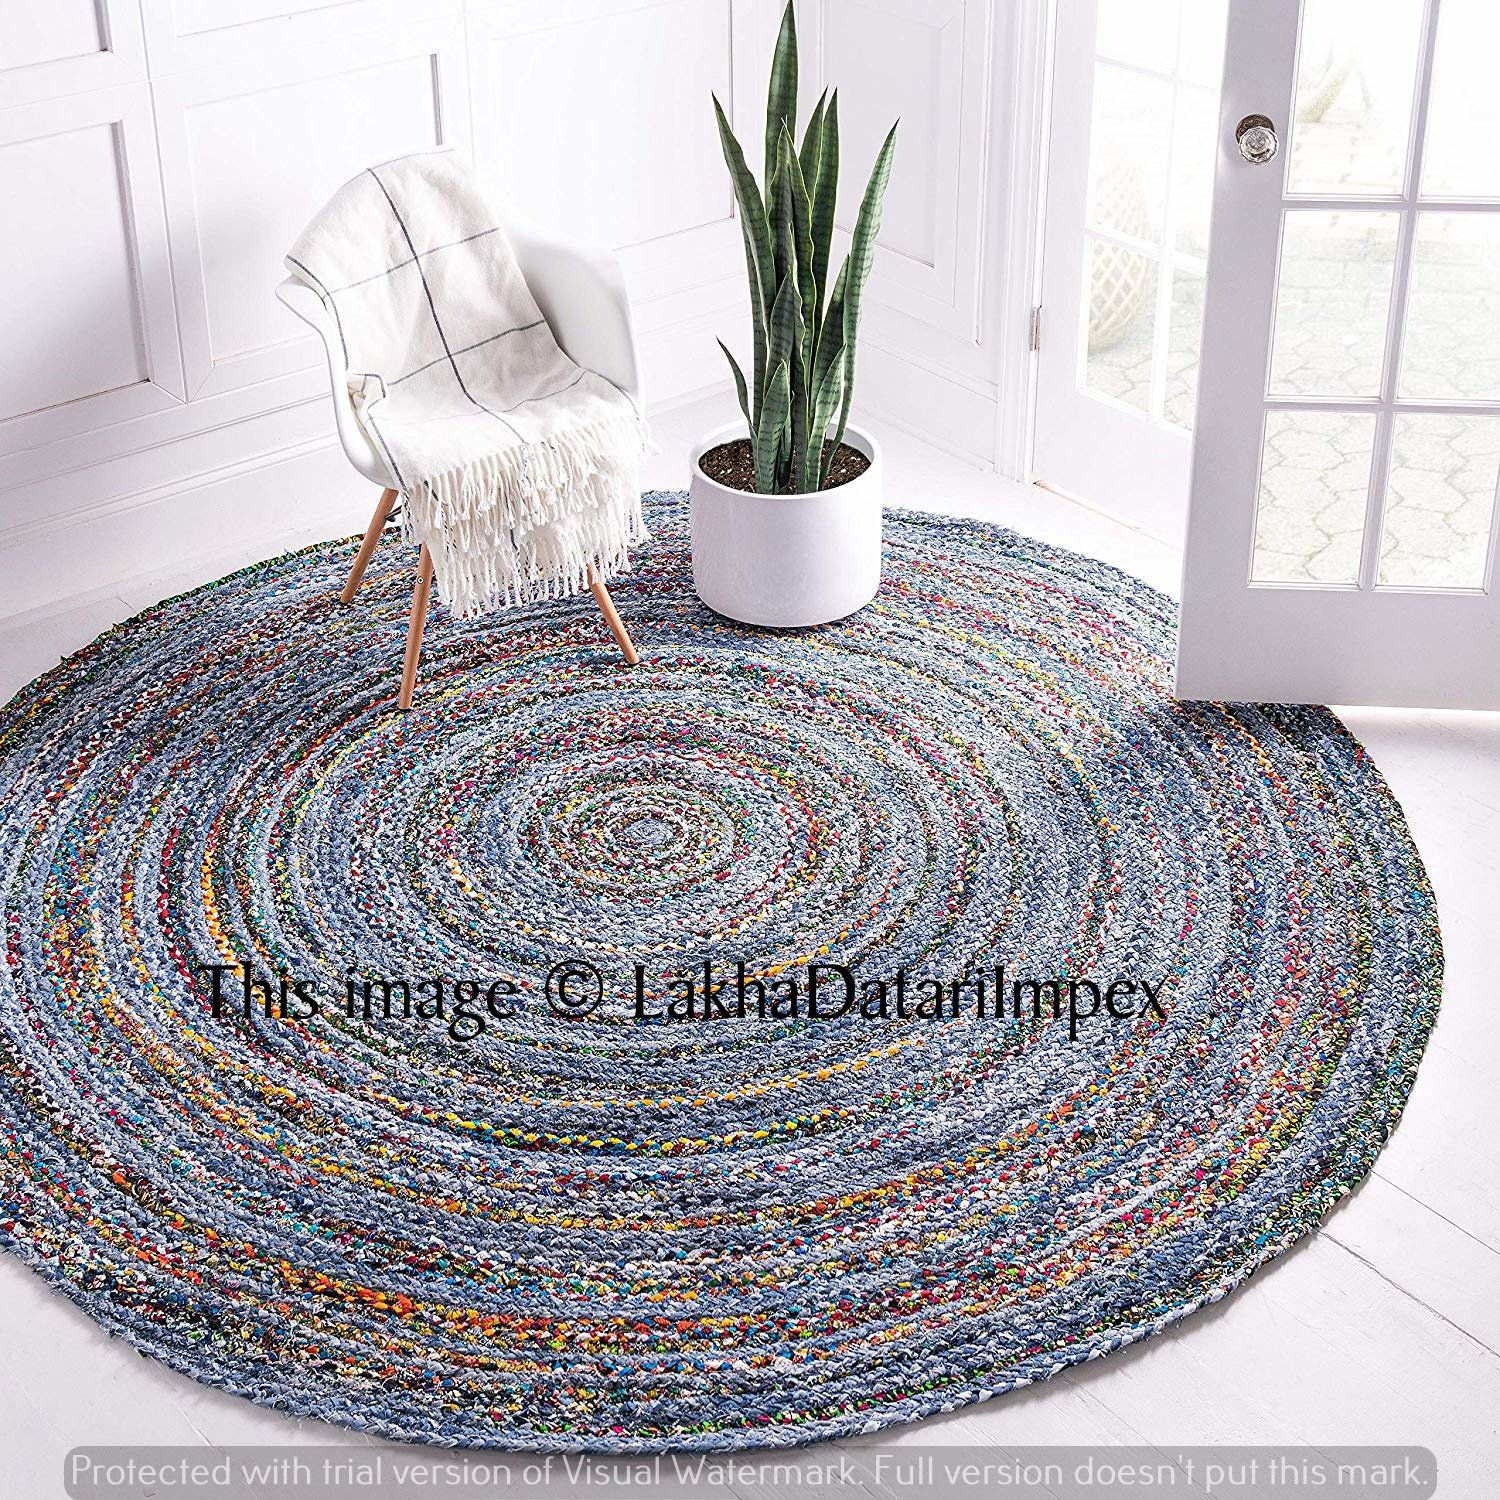 Indian Braided Round Rag Rug Jute Rug Beautiful Jute Rug Cotton Handmade Rug Home Decor Floor Area Rug Natural Rug 2x2 Feet Blue Chindi Rug Rugs On Carpet Floor Rugs Round